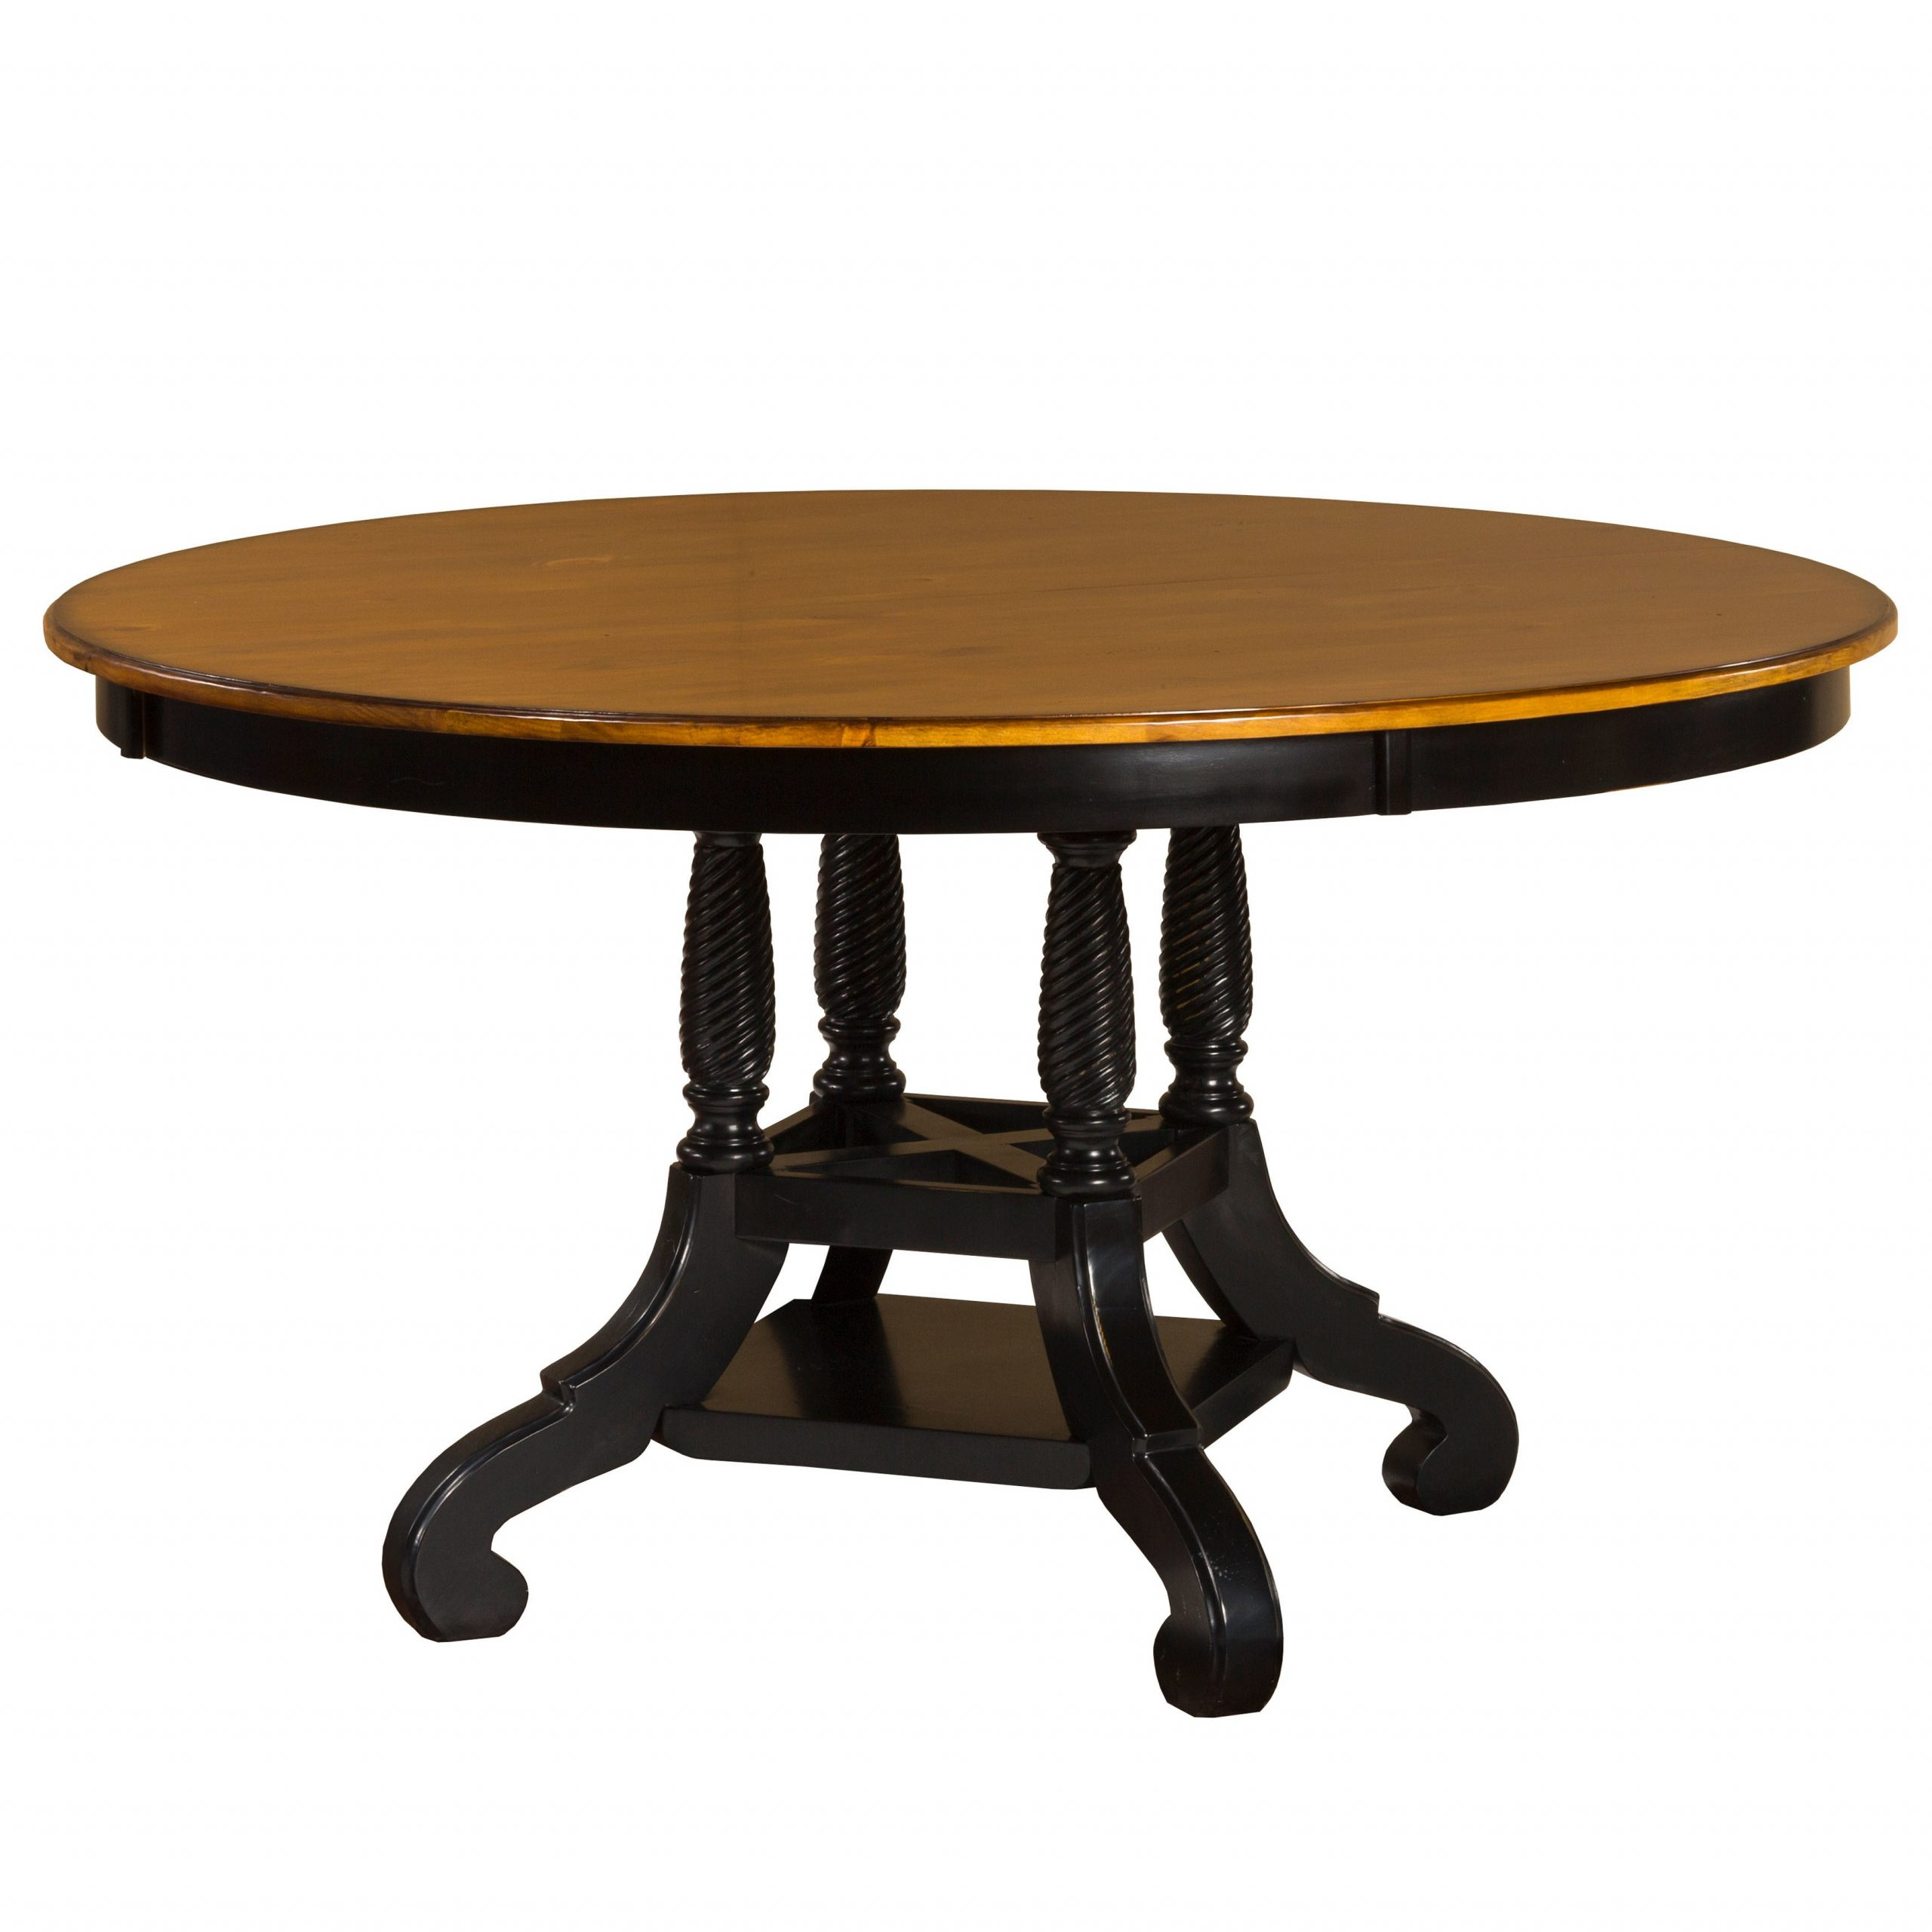 Blackened Oak Benchwright Pedestal Extending Dining Tables intended for Latest Hillsdale Furniture Wilshire Rubbed Black Wood Round Table